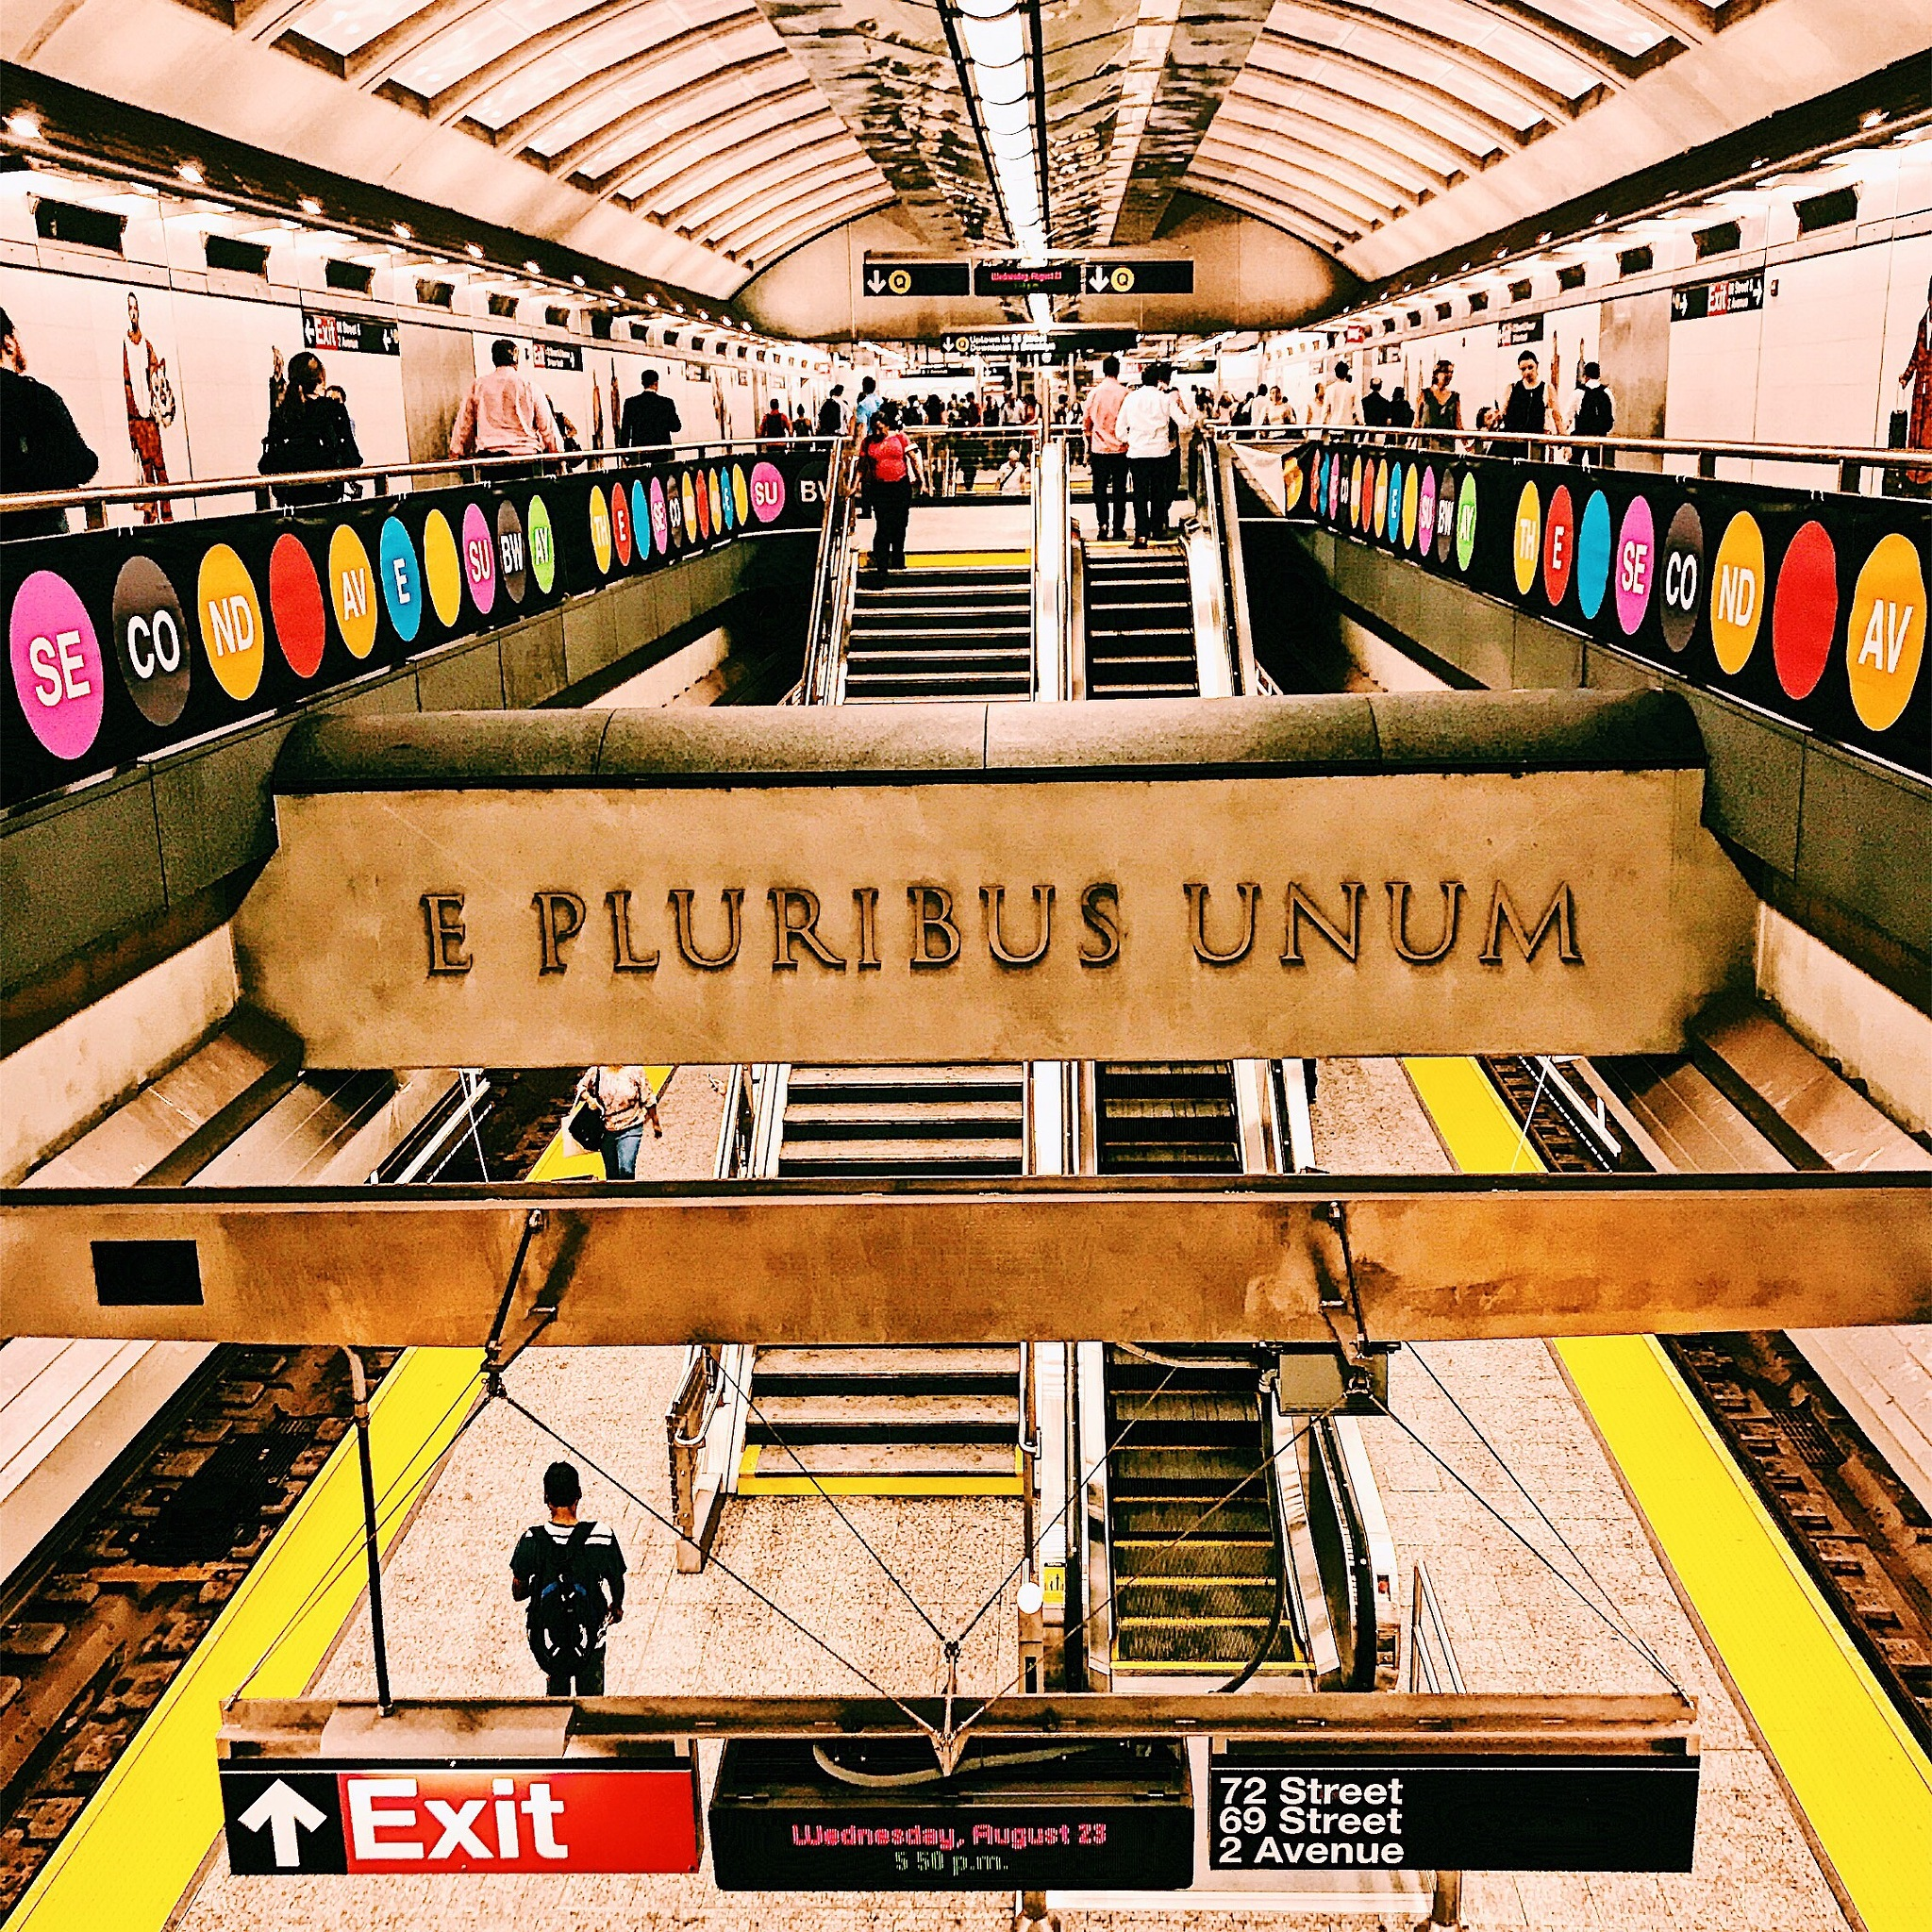 E Pluribus Unum (Out of Many, One) by Cynthia S. Wright